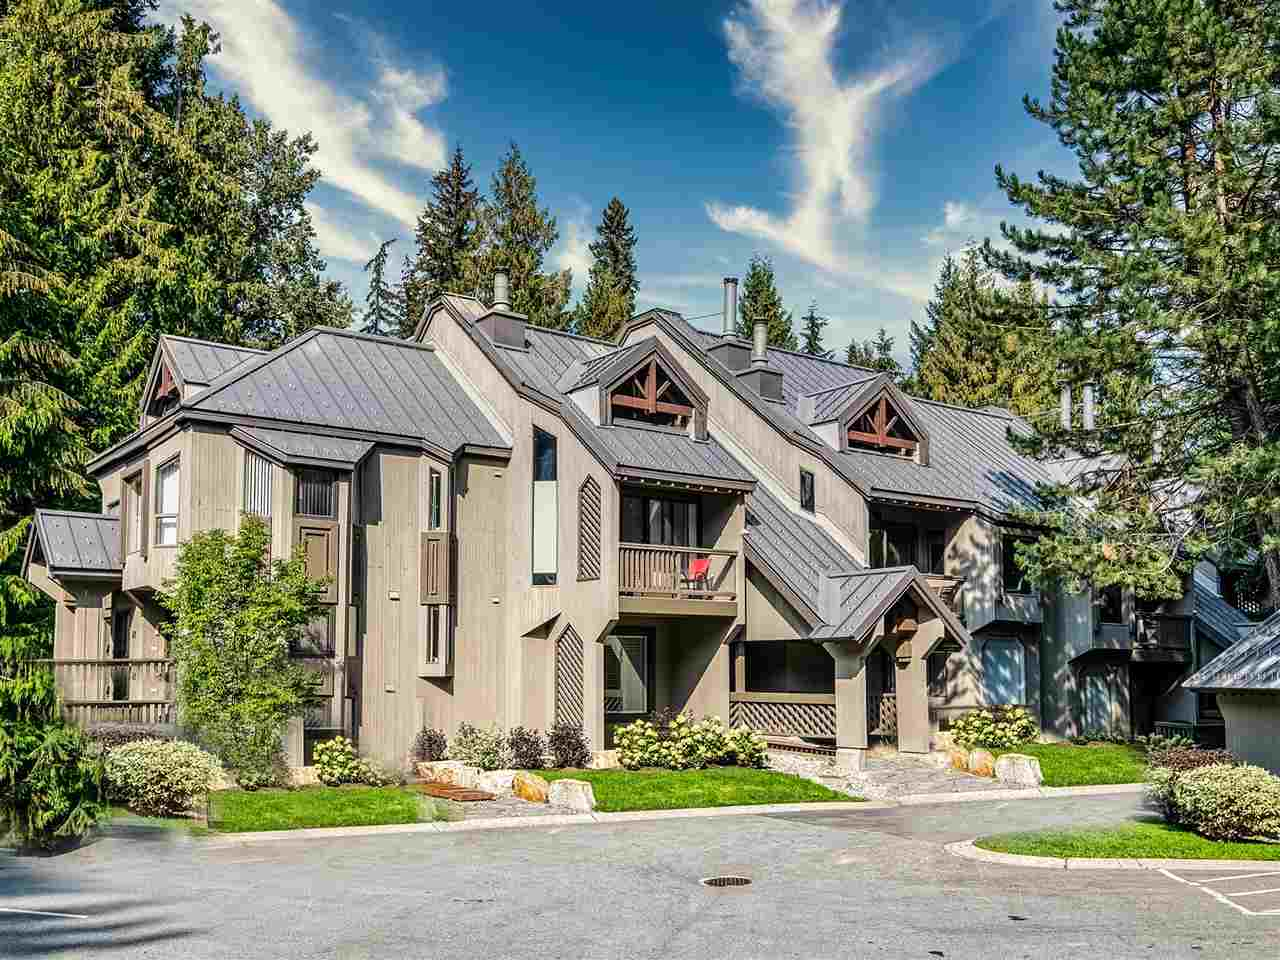 59 4510 BLACKCOMB WAY - Whistler Village Townhouse for sale, 3 Bedrooms (R2505011)